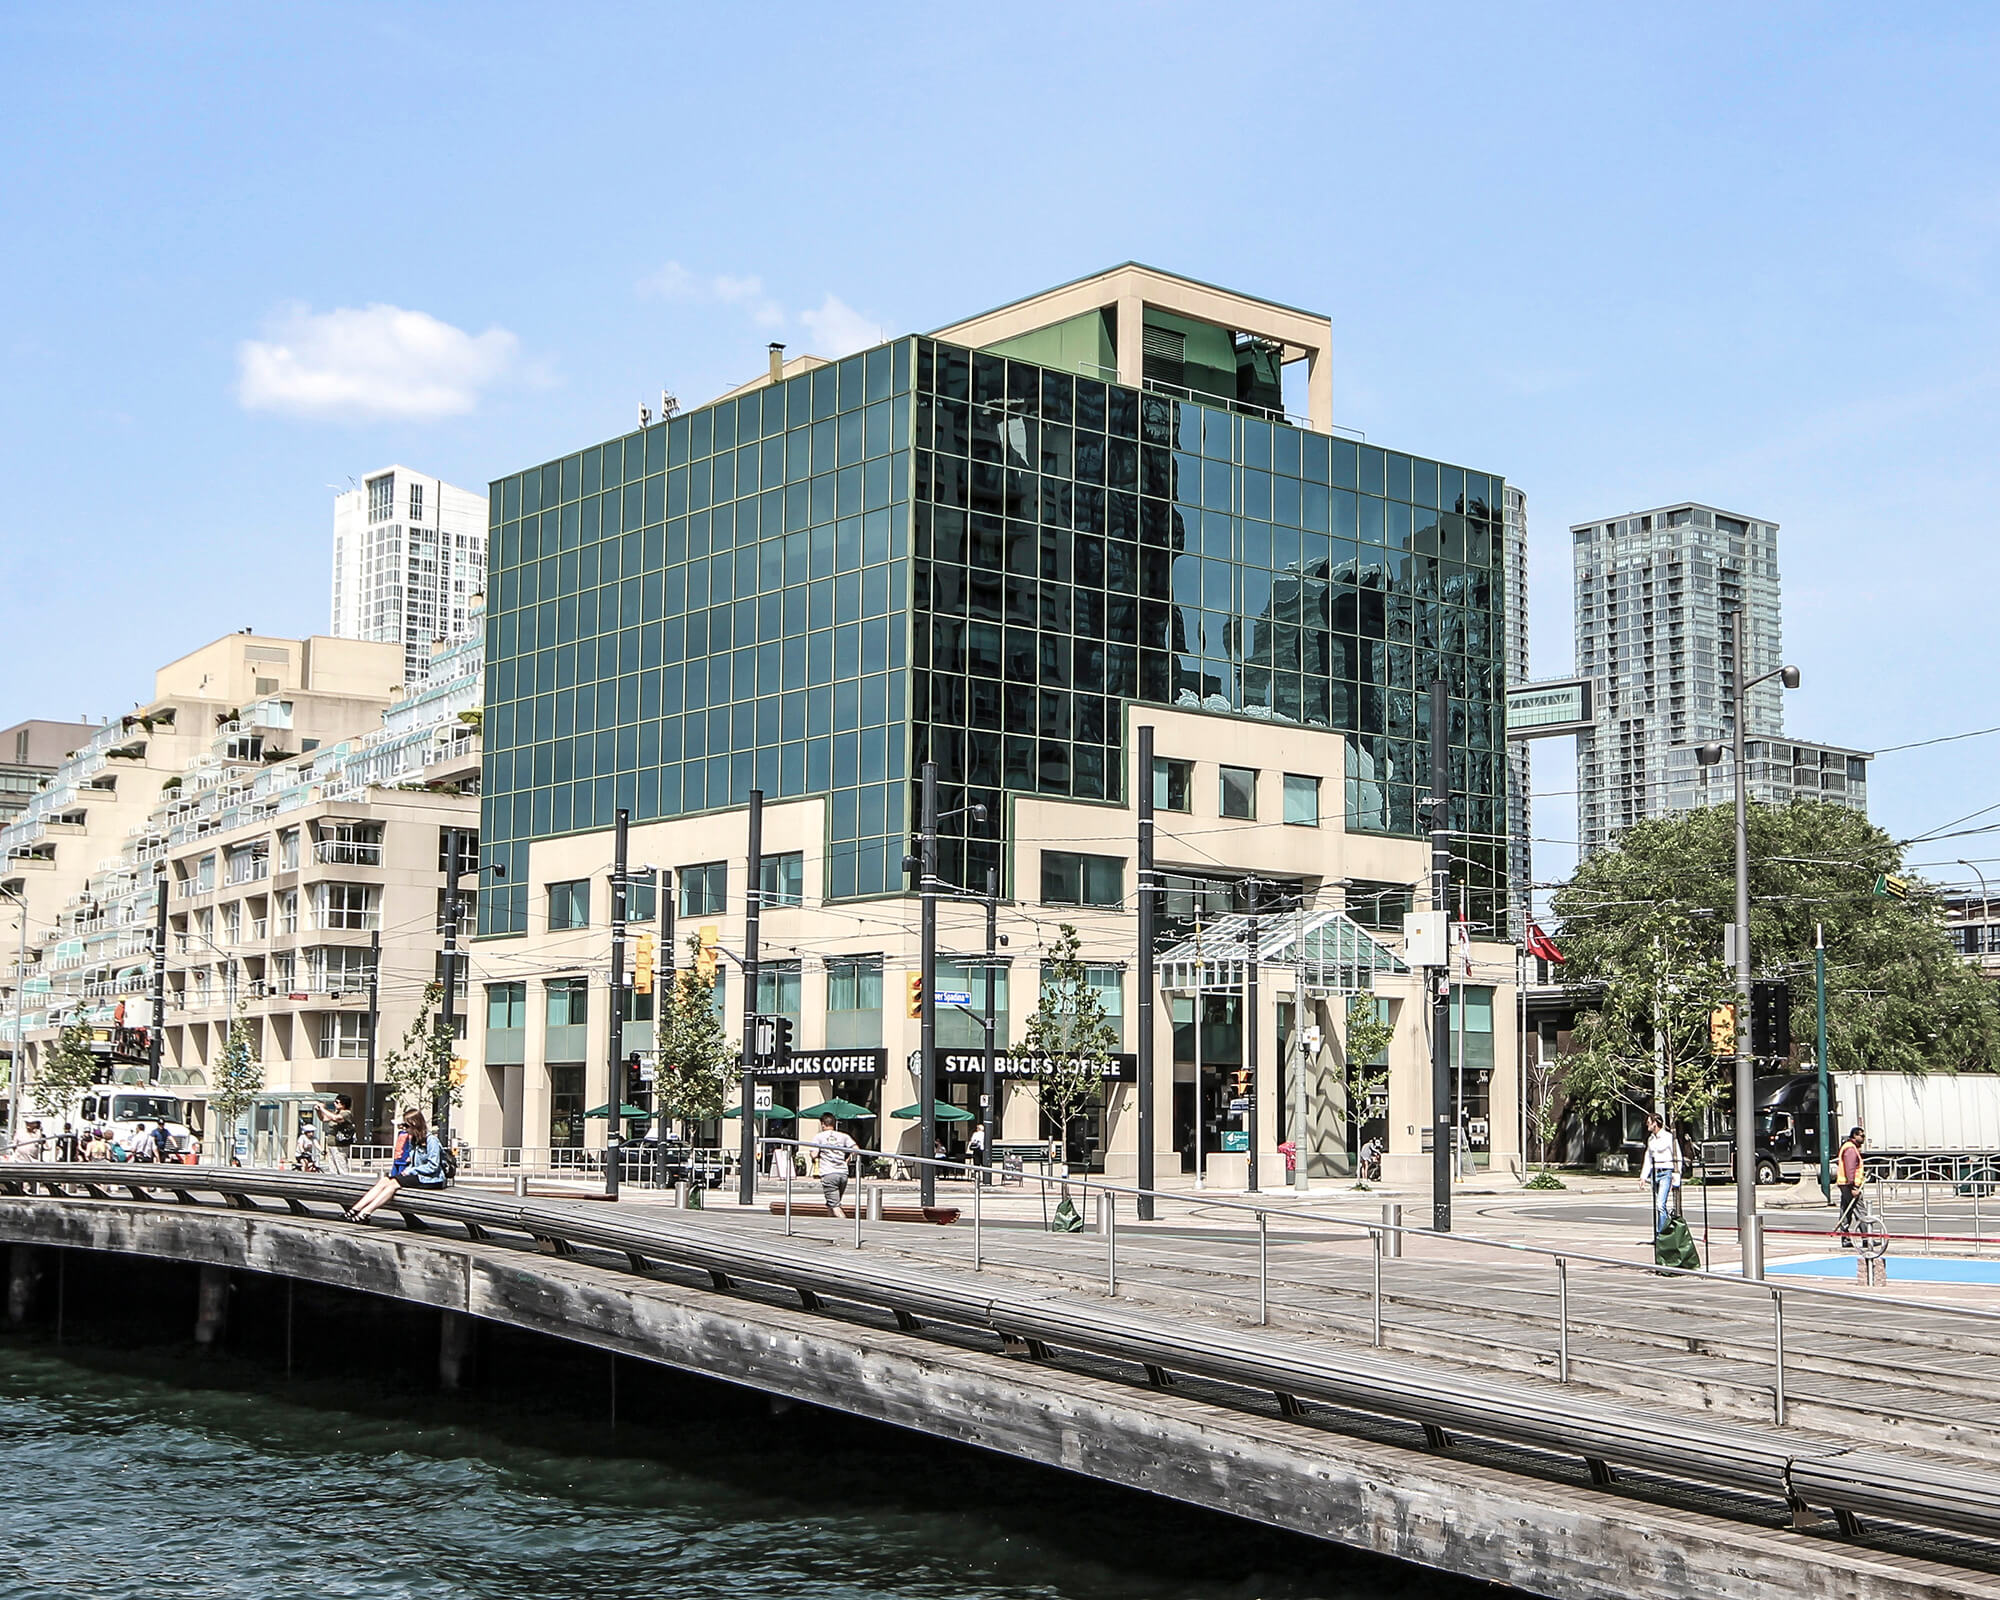 image of the waterfront Spadina Quay Office Complex - 10 Lower Spadina Ave. with people walking along the lake shore